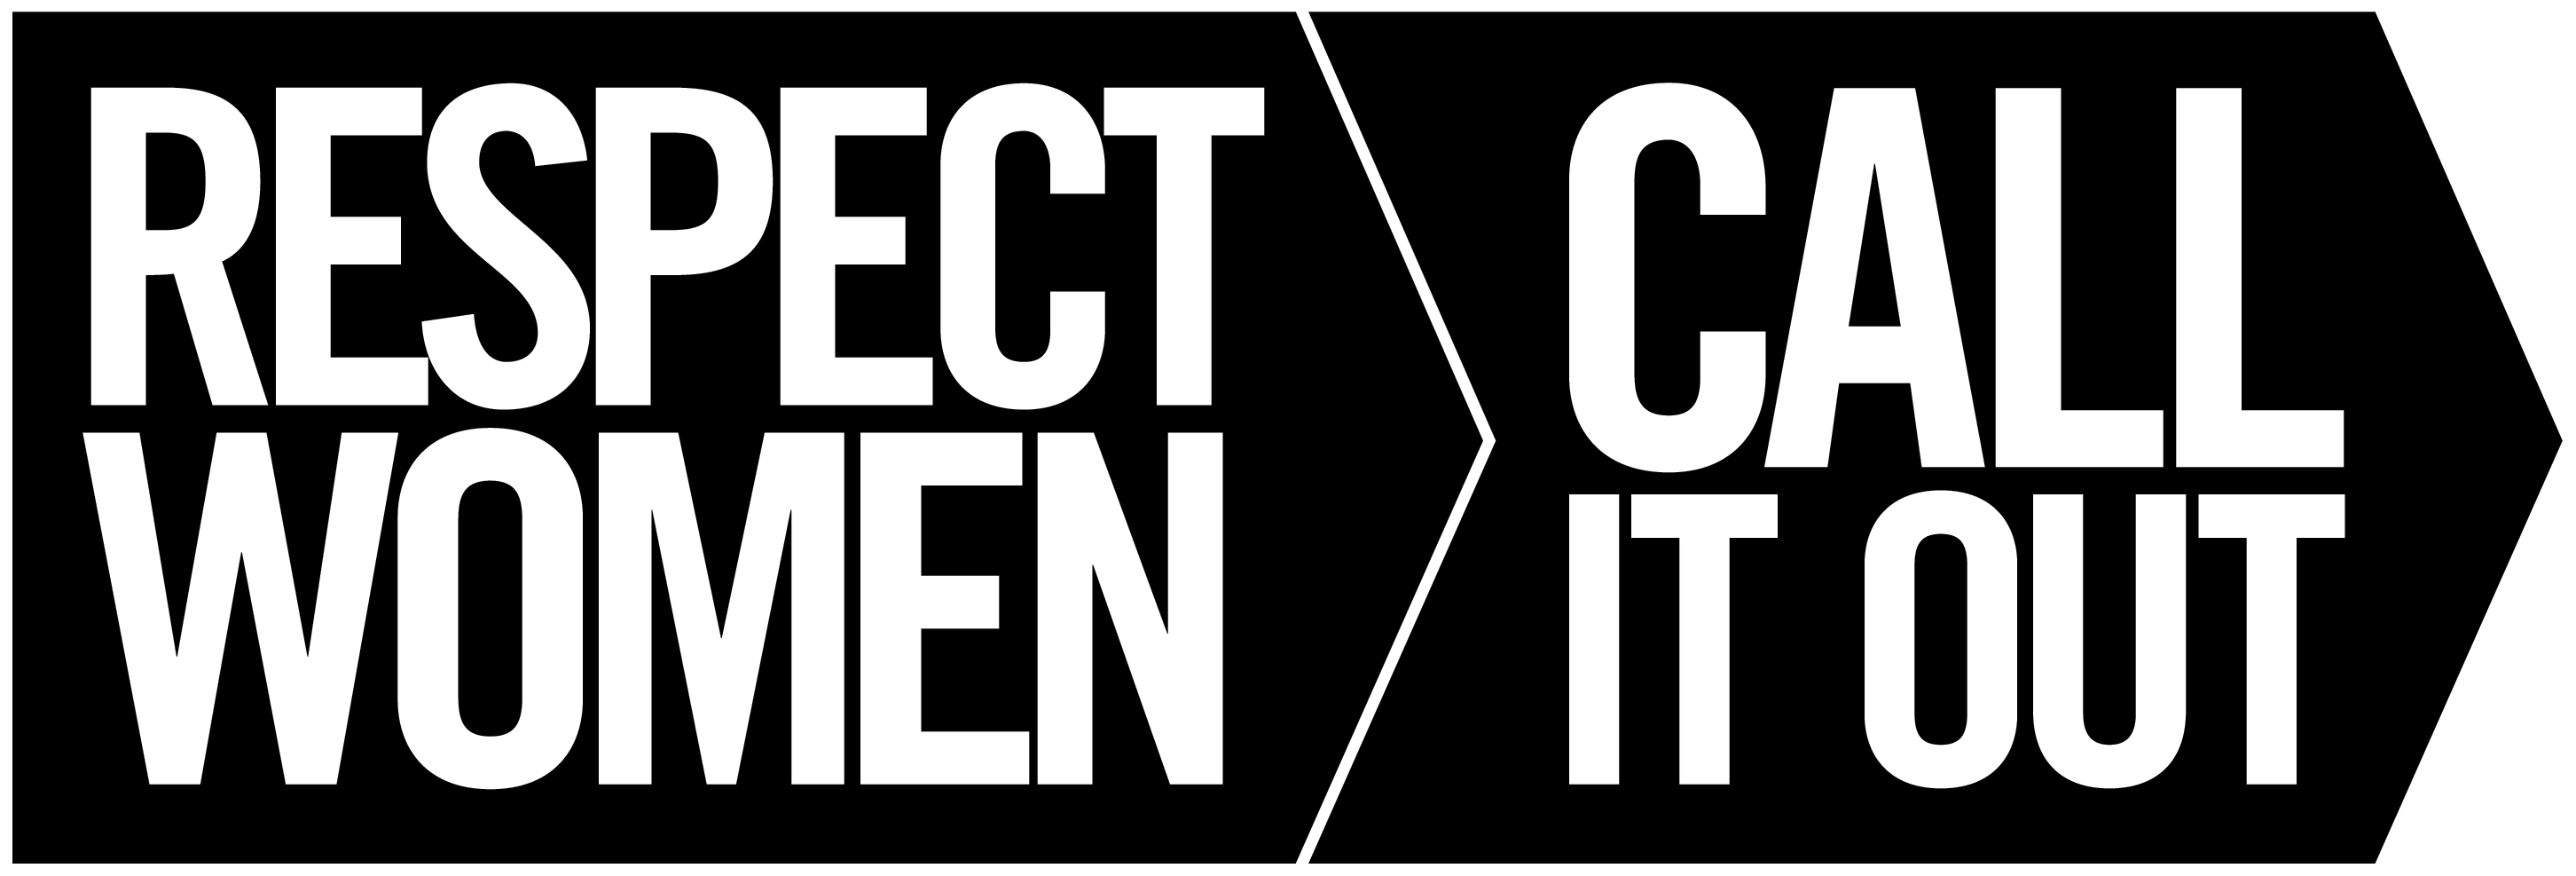 Respect women - call it out